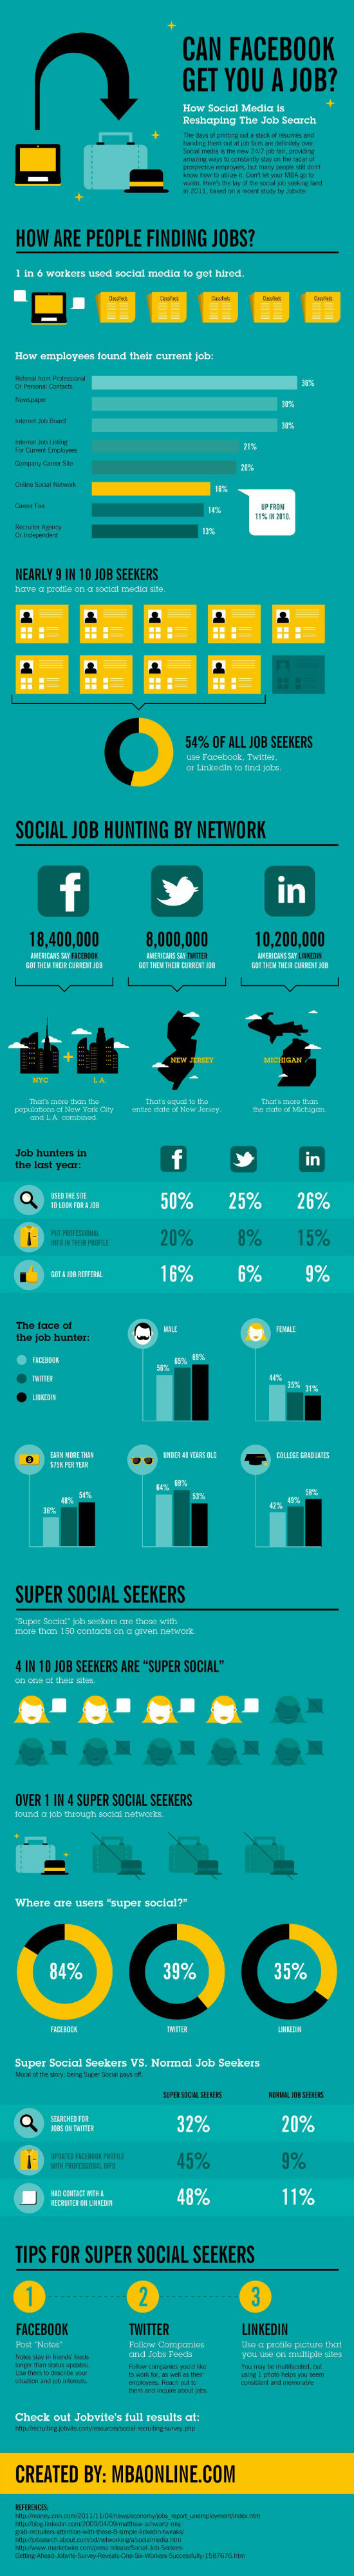 Using Social Media to Get a Job: Can Facebook get you a job? Infographic